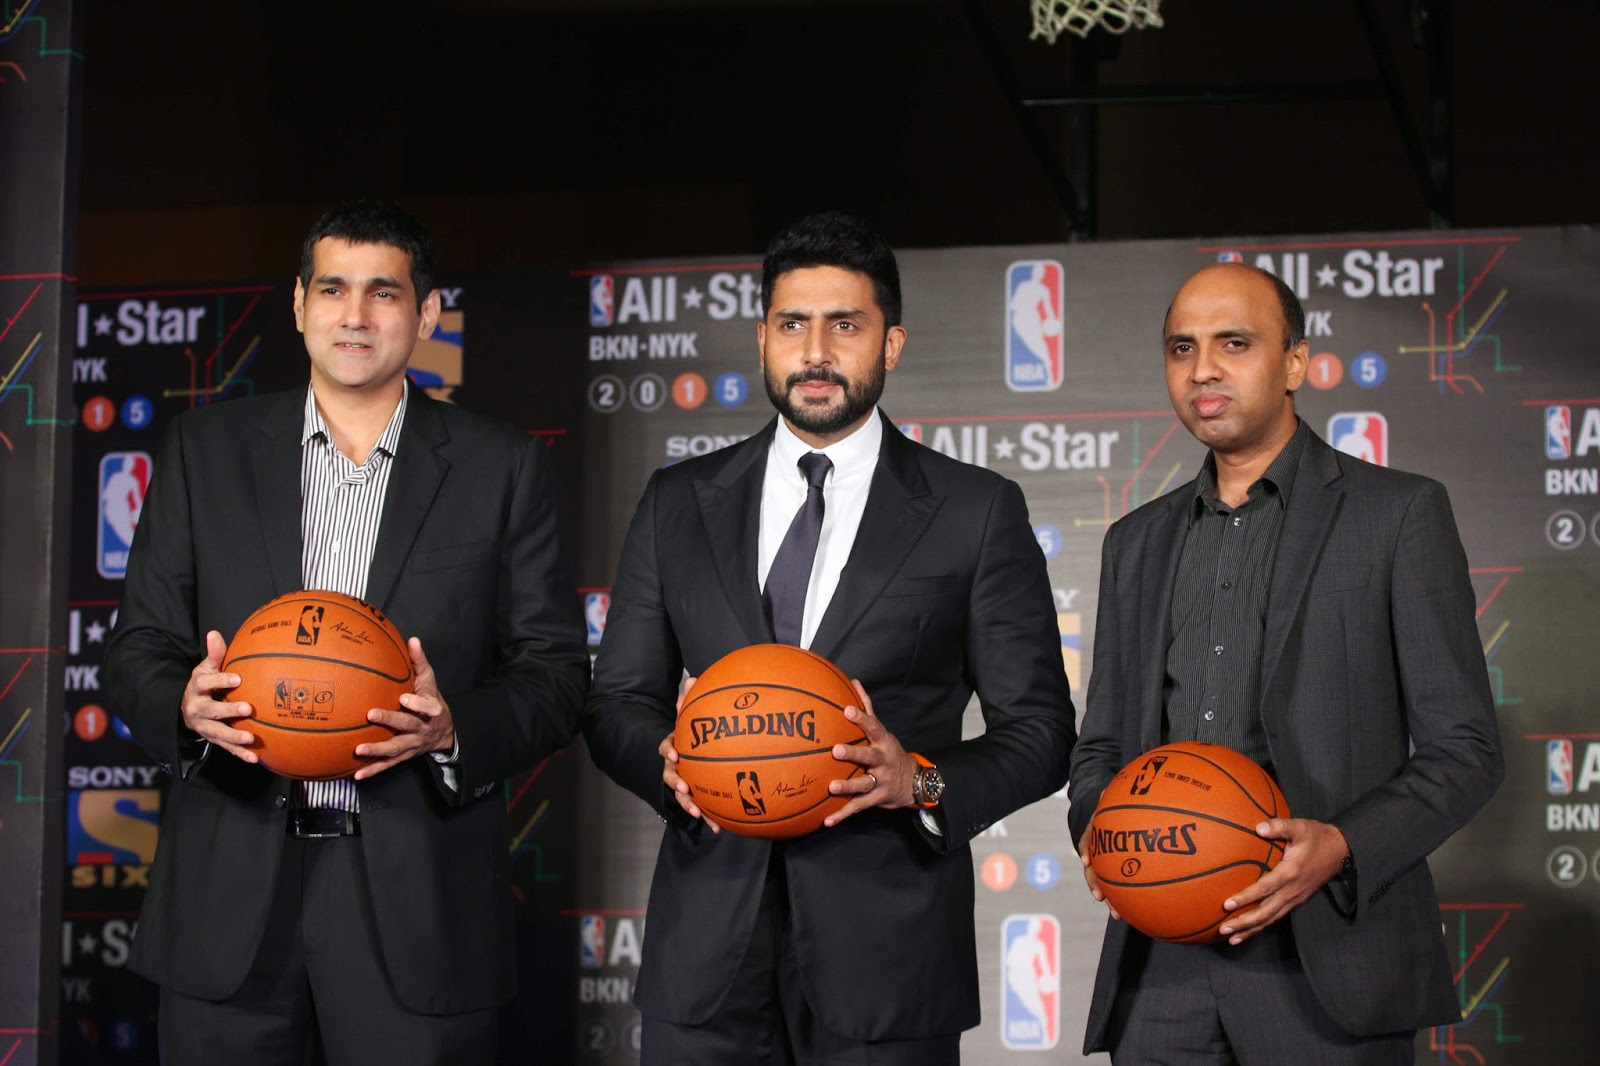 Abhishek Bachchan at NBA All Stars press meet